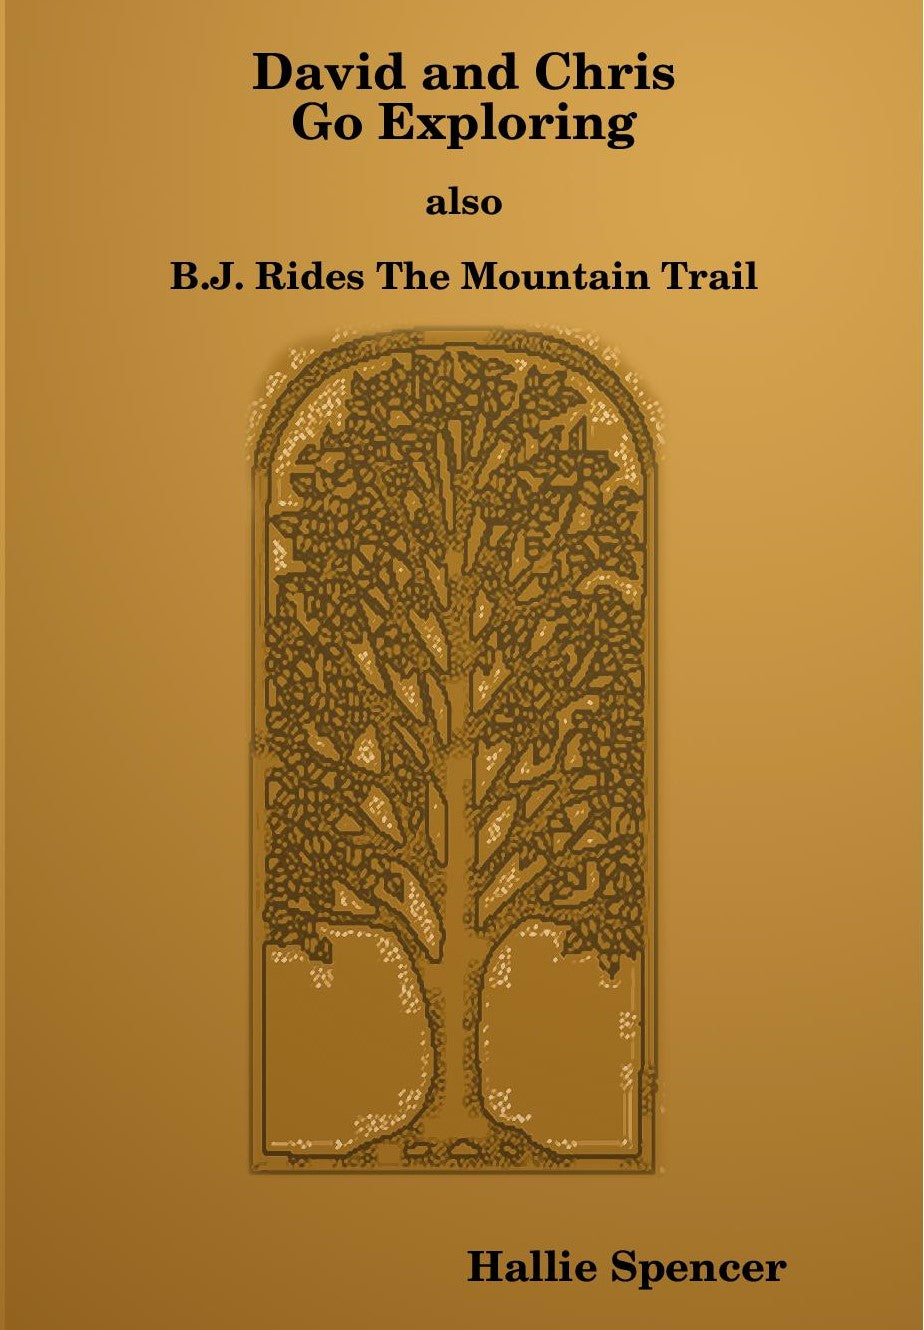 David and Chris Go Exploring and B.J. Rides The Mountain Trail - Hallie Spencer